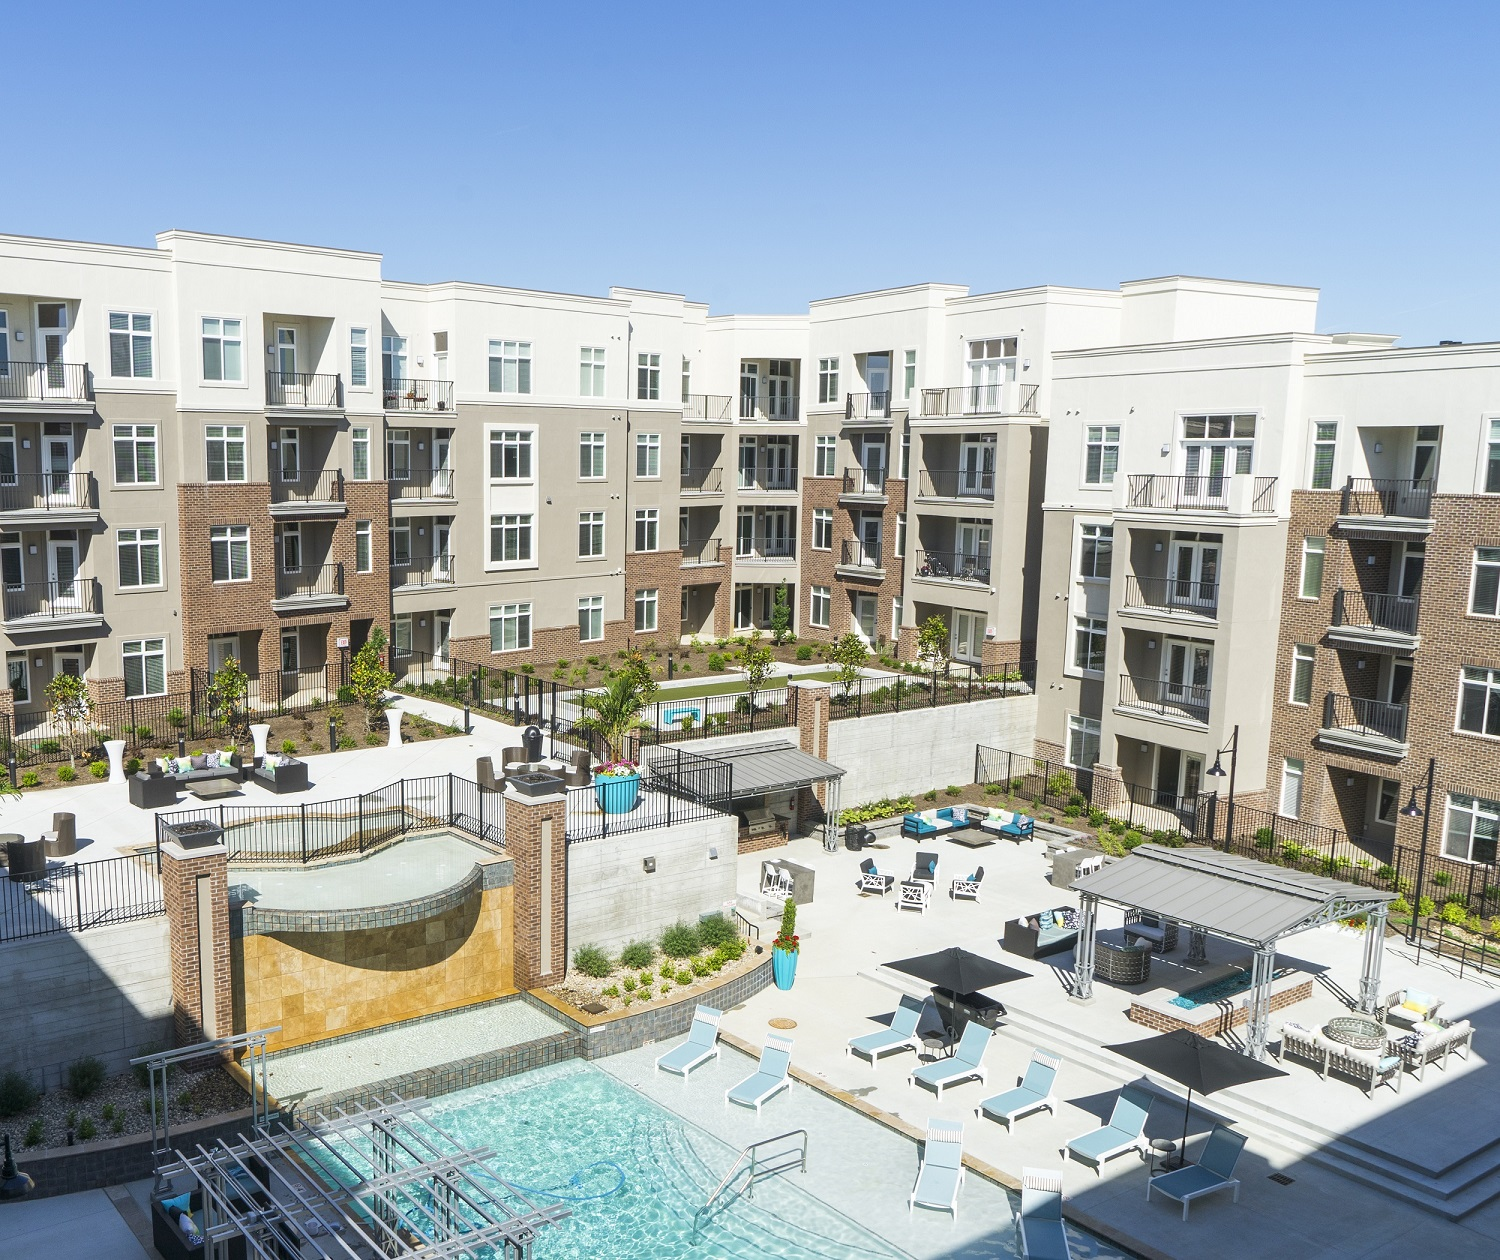 Resort-Style Swimming Pool at Domain City Center Luxury Apartments in Lenexa, Kansas